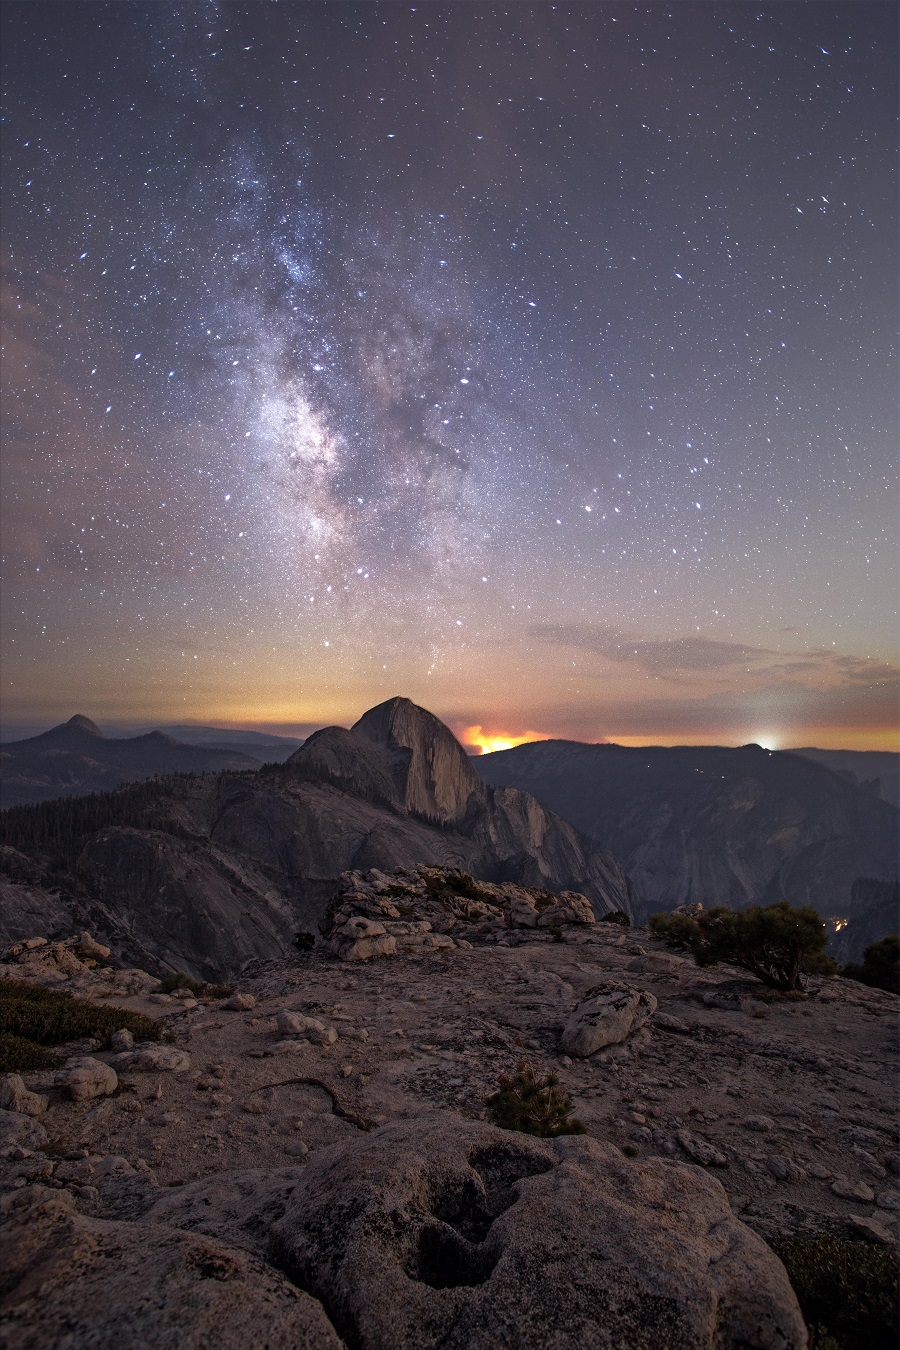 The Milky Way over Half Dome in Yosemite National Park